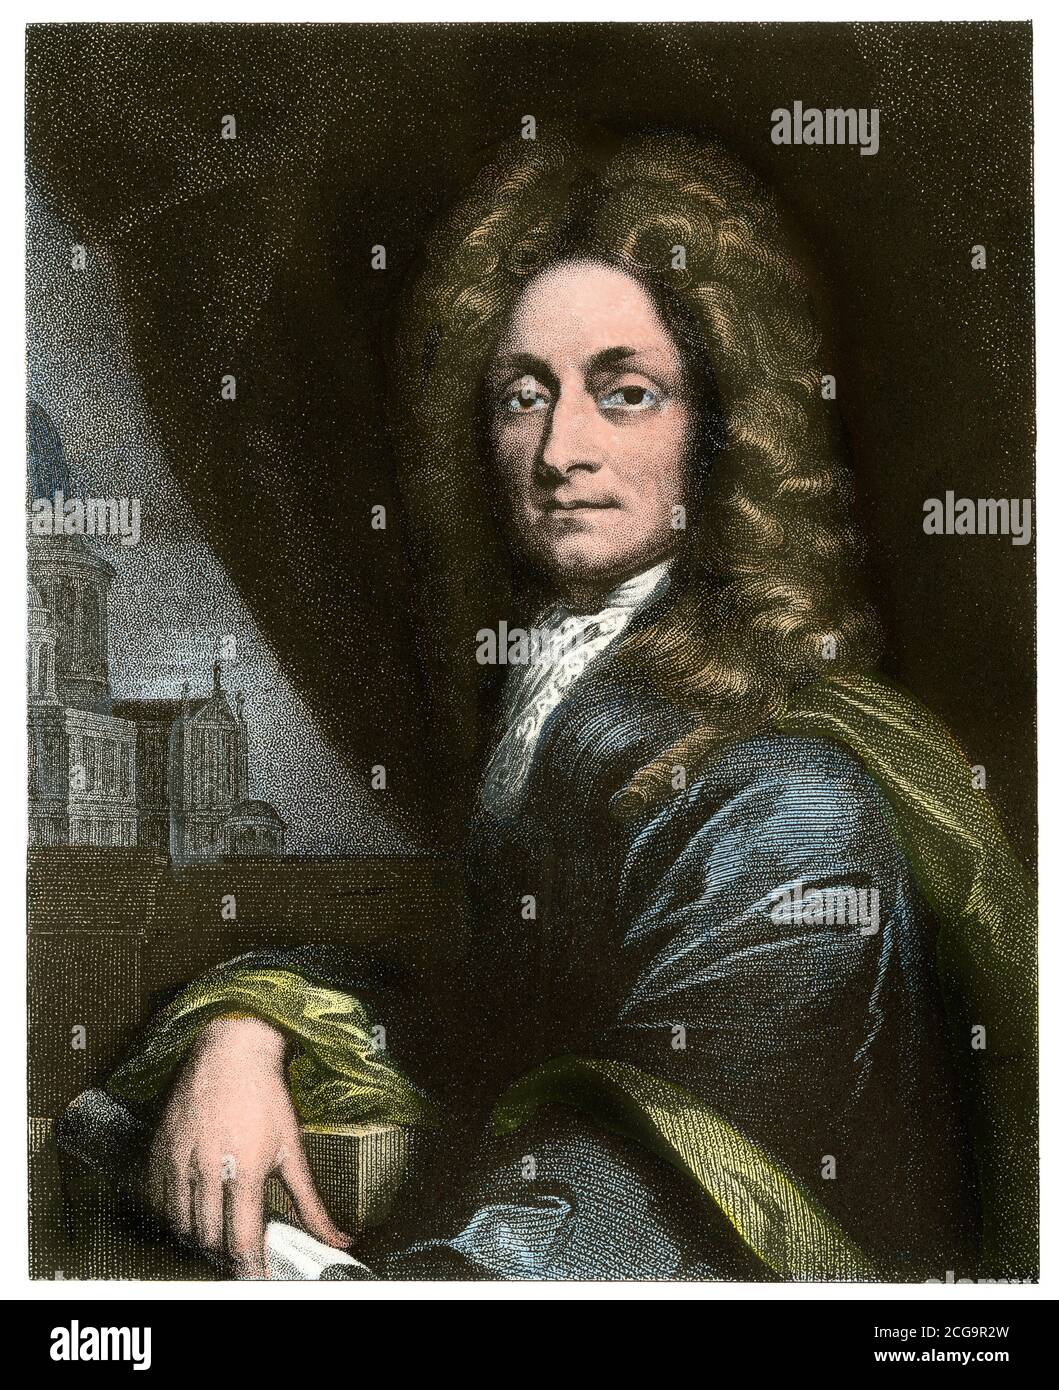 Architect Christopher Wren. Hand-colored steel engraving Stock Photo